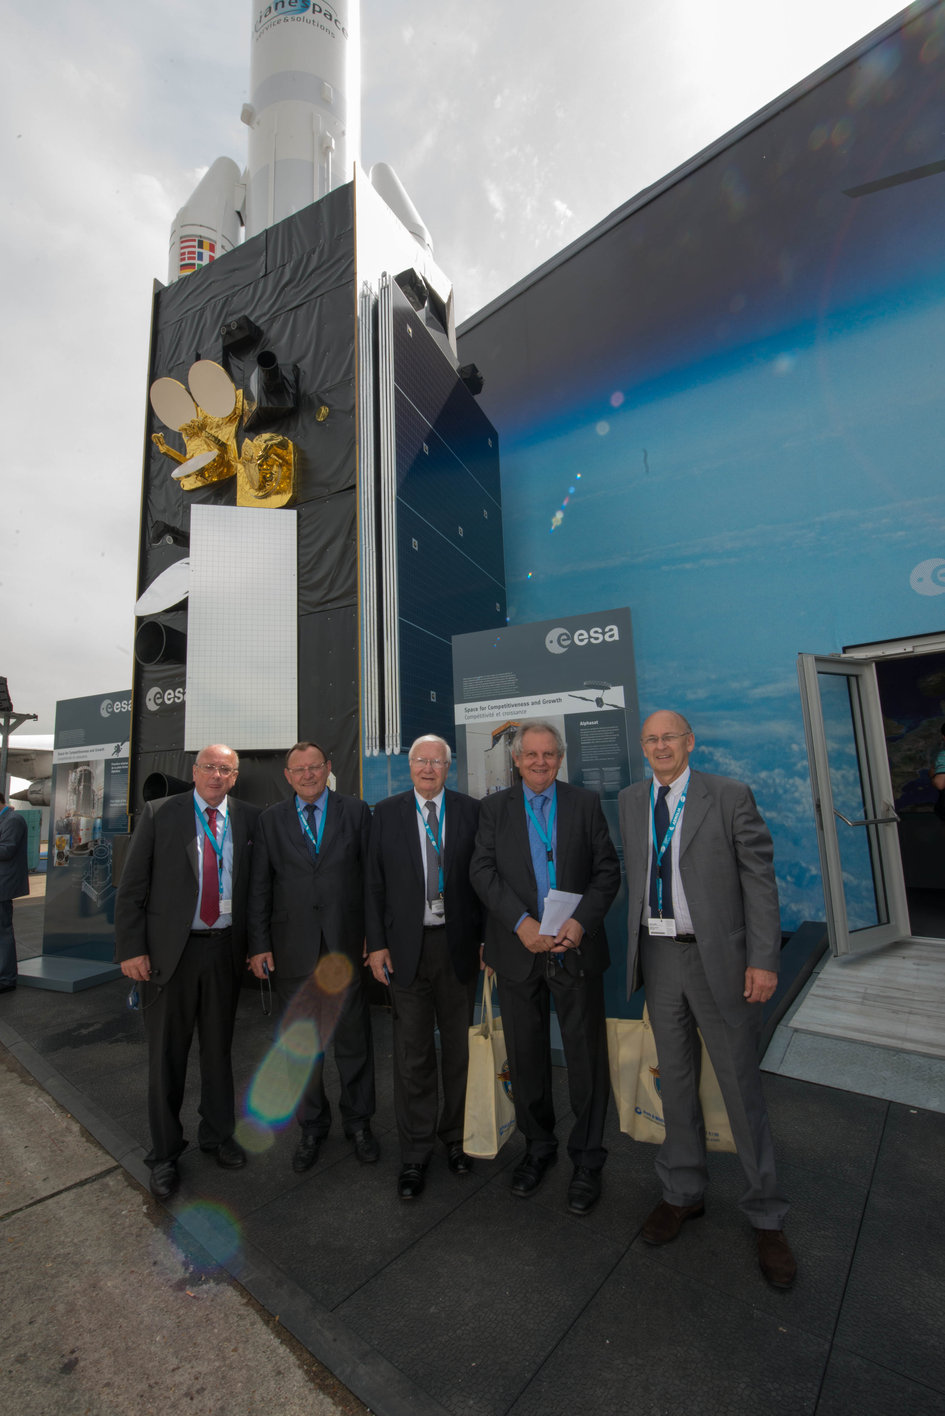 Members of the OPECST of France in front of the ESA Pavilion